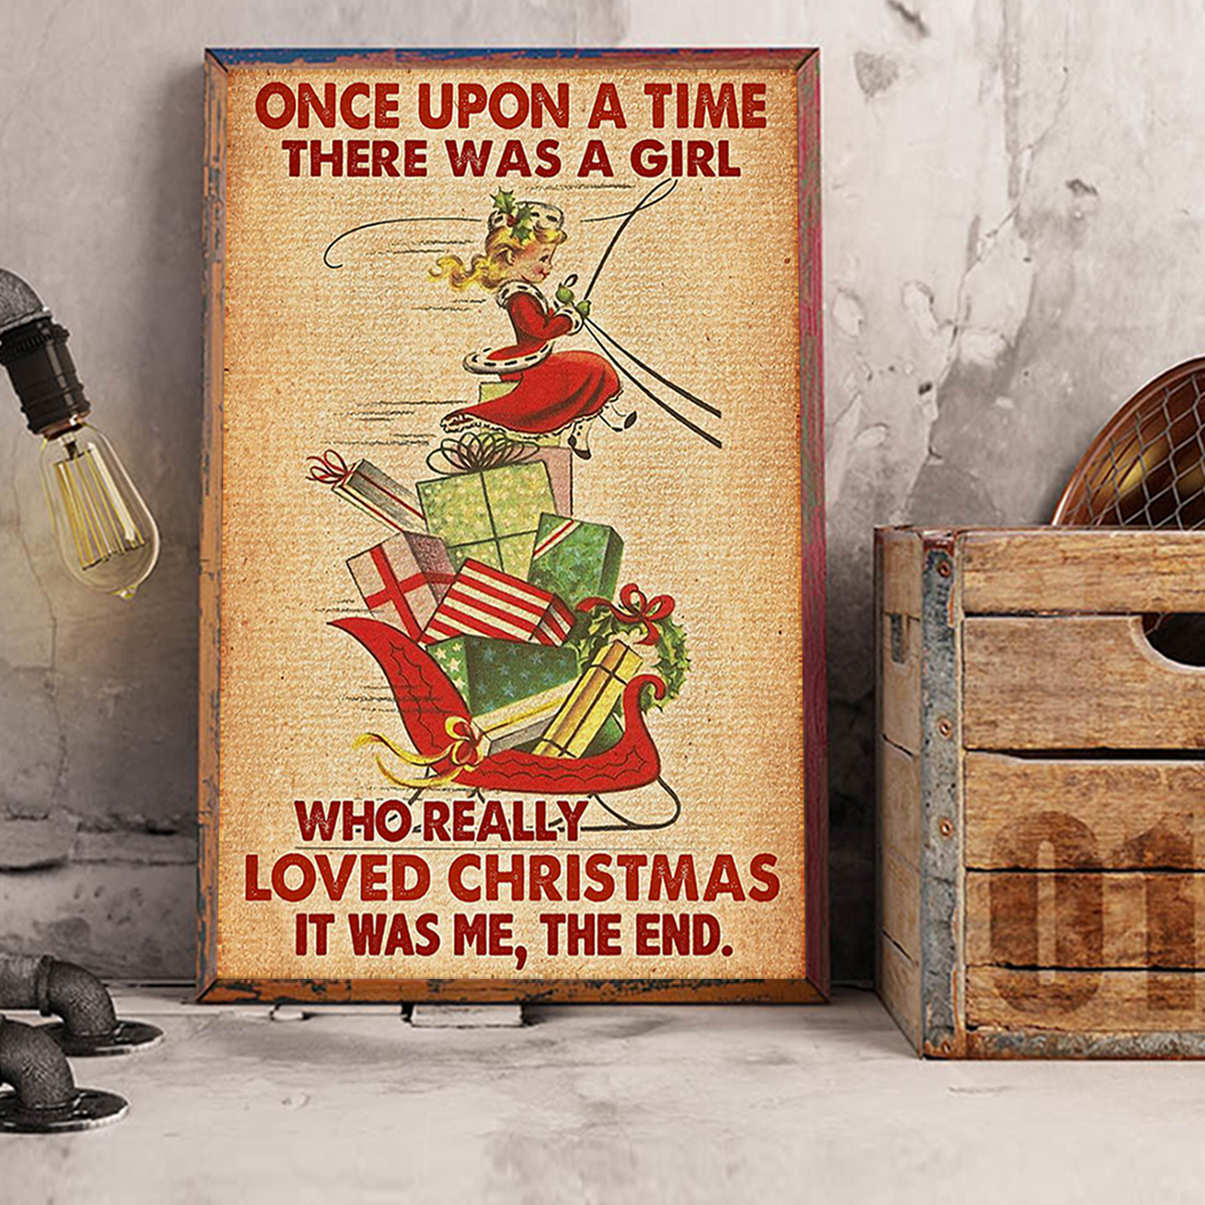 Once upon a time there was a girl who really loved christmas it was me the end poster A1